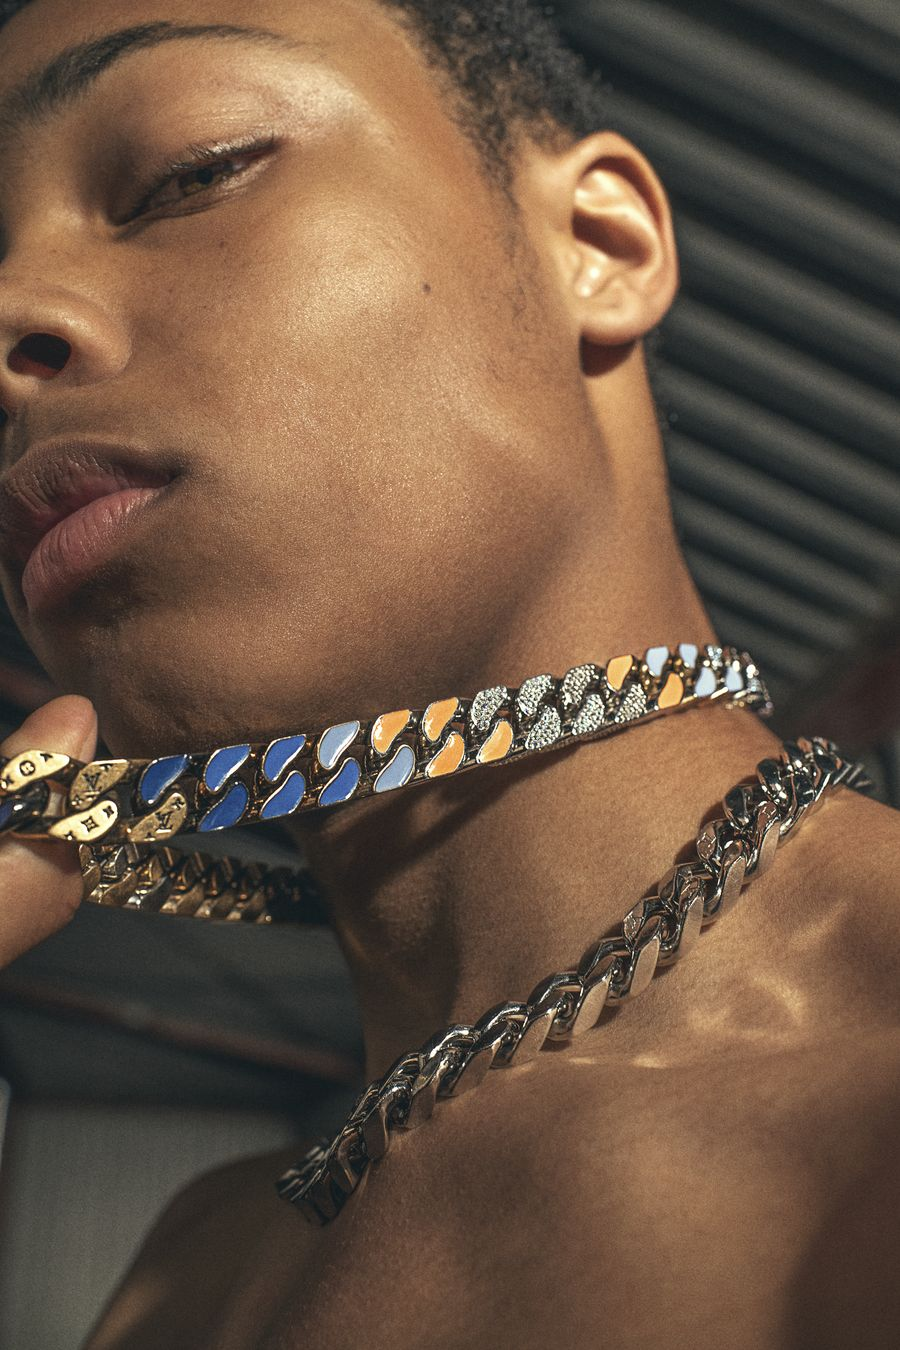 Louis Vuitton Virgil Abloh Men's Jewellery